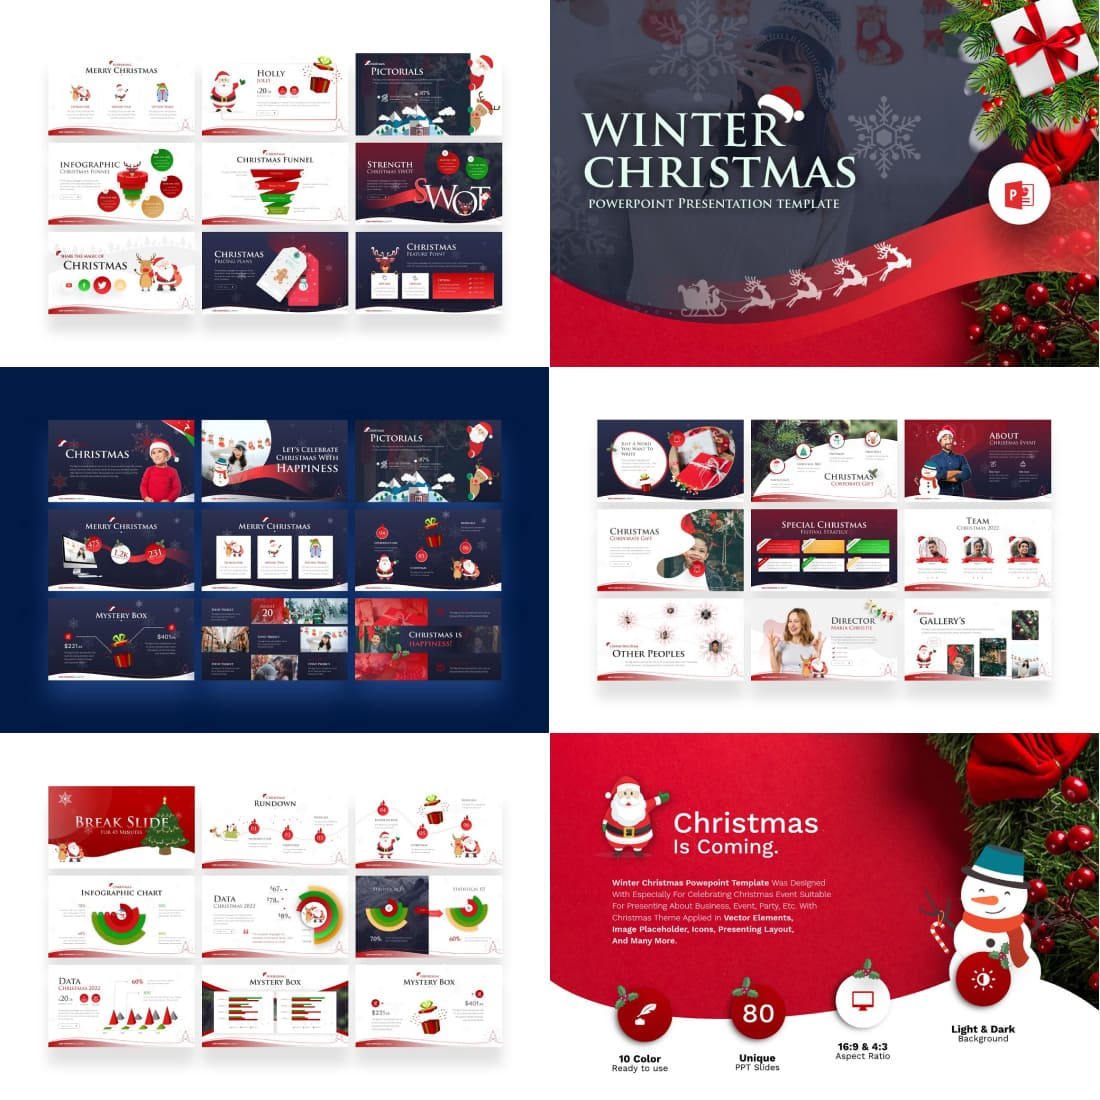 Winter Christmas PowerPoint Template.